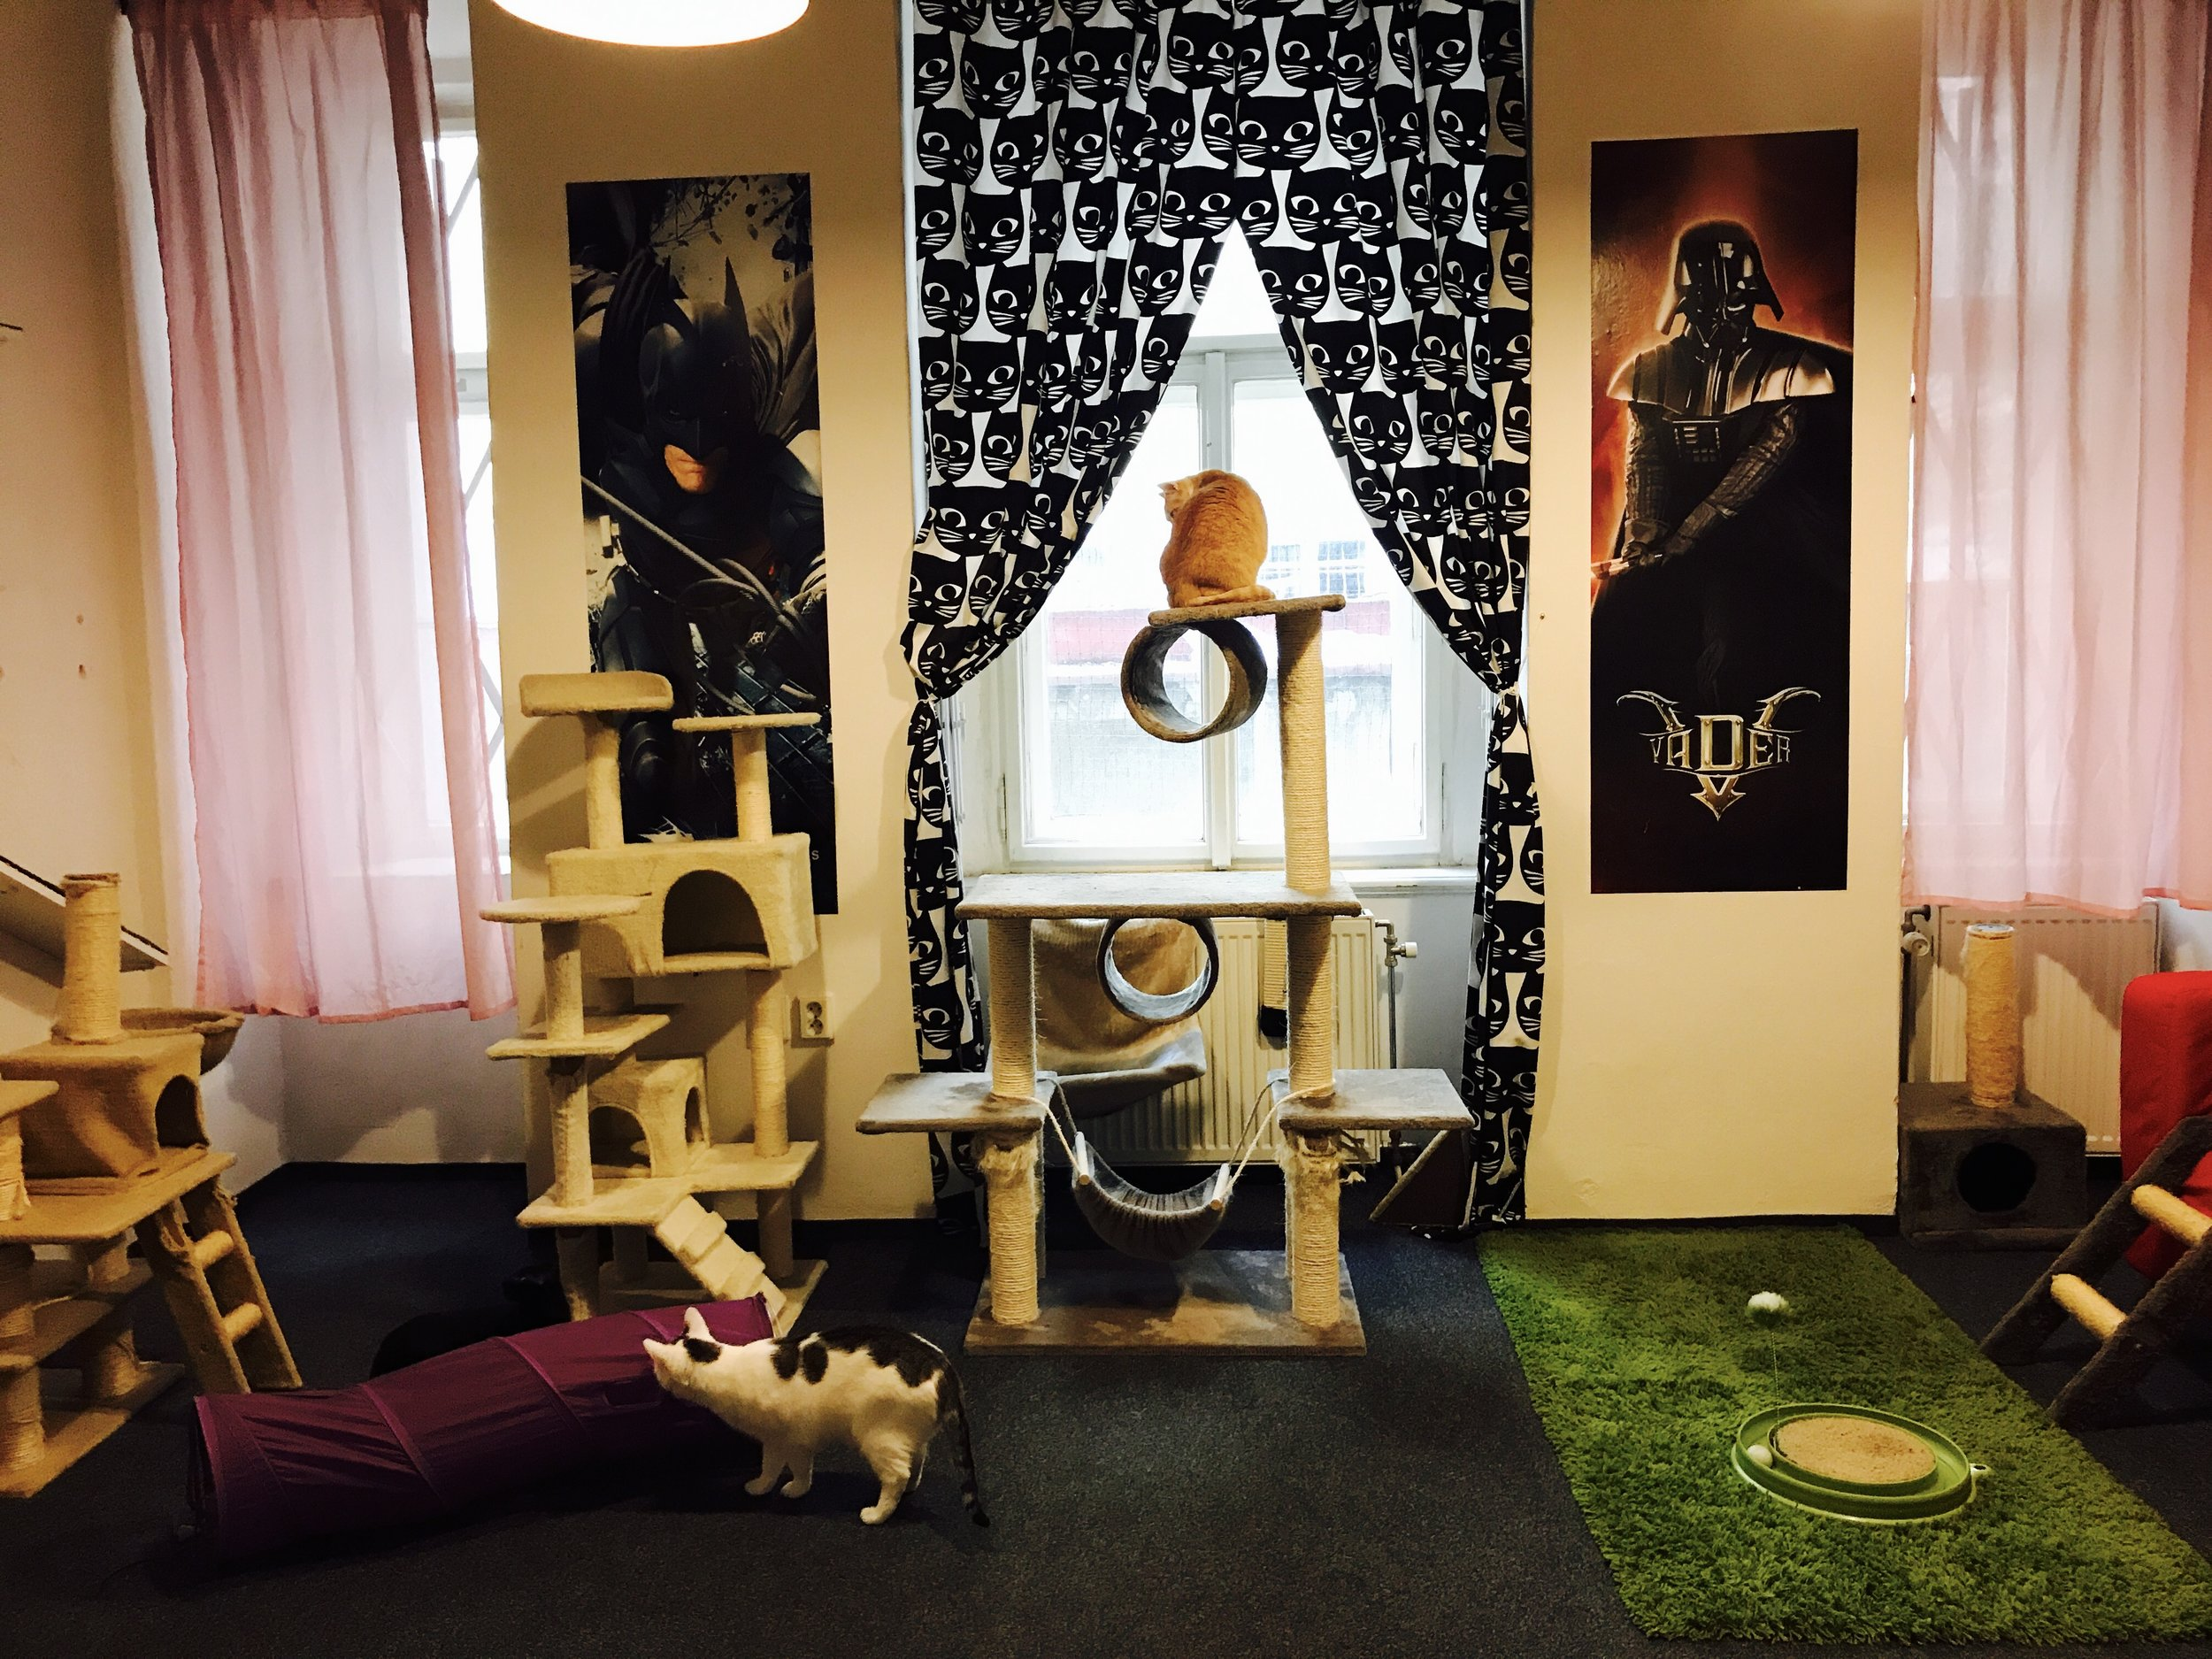 In addition to the cat room, there is a video game room